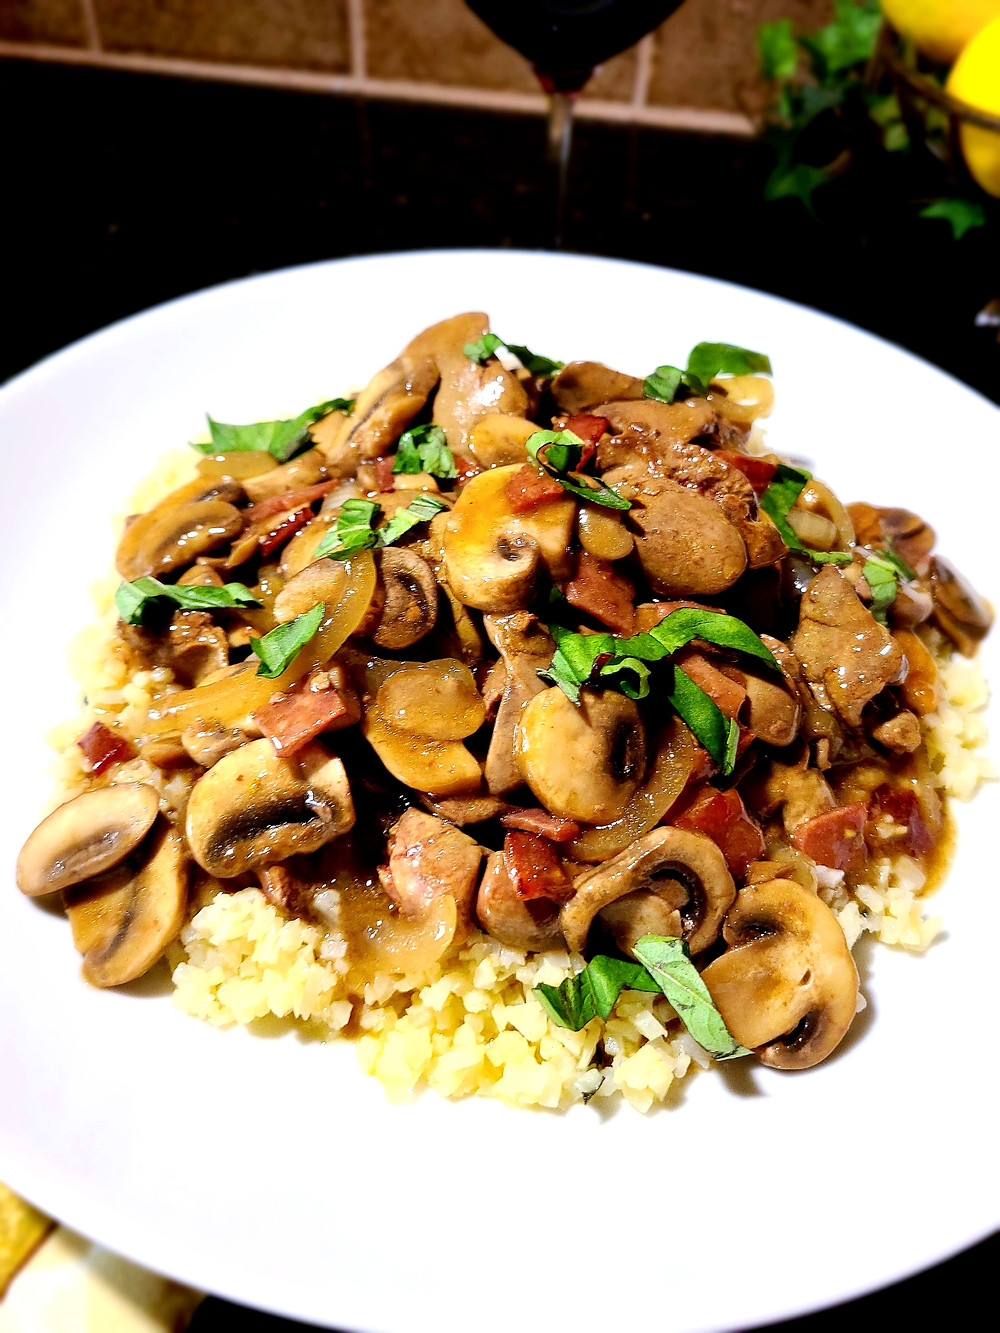 Chicken Livers with Bacon-Onion-Mushroom Sauce (Gluten-free, soy-free, AIP)